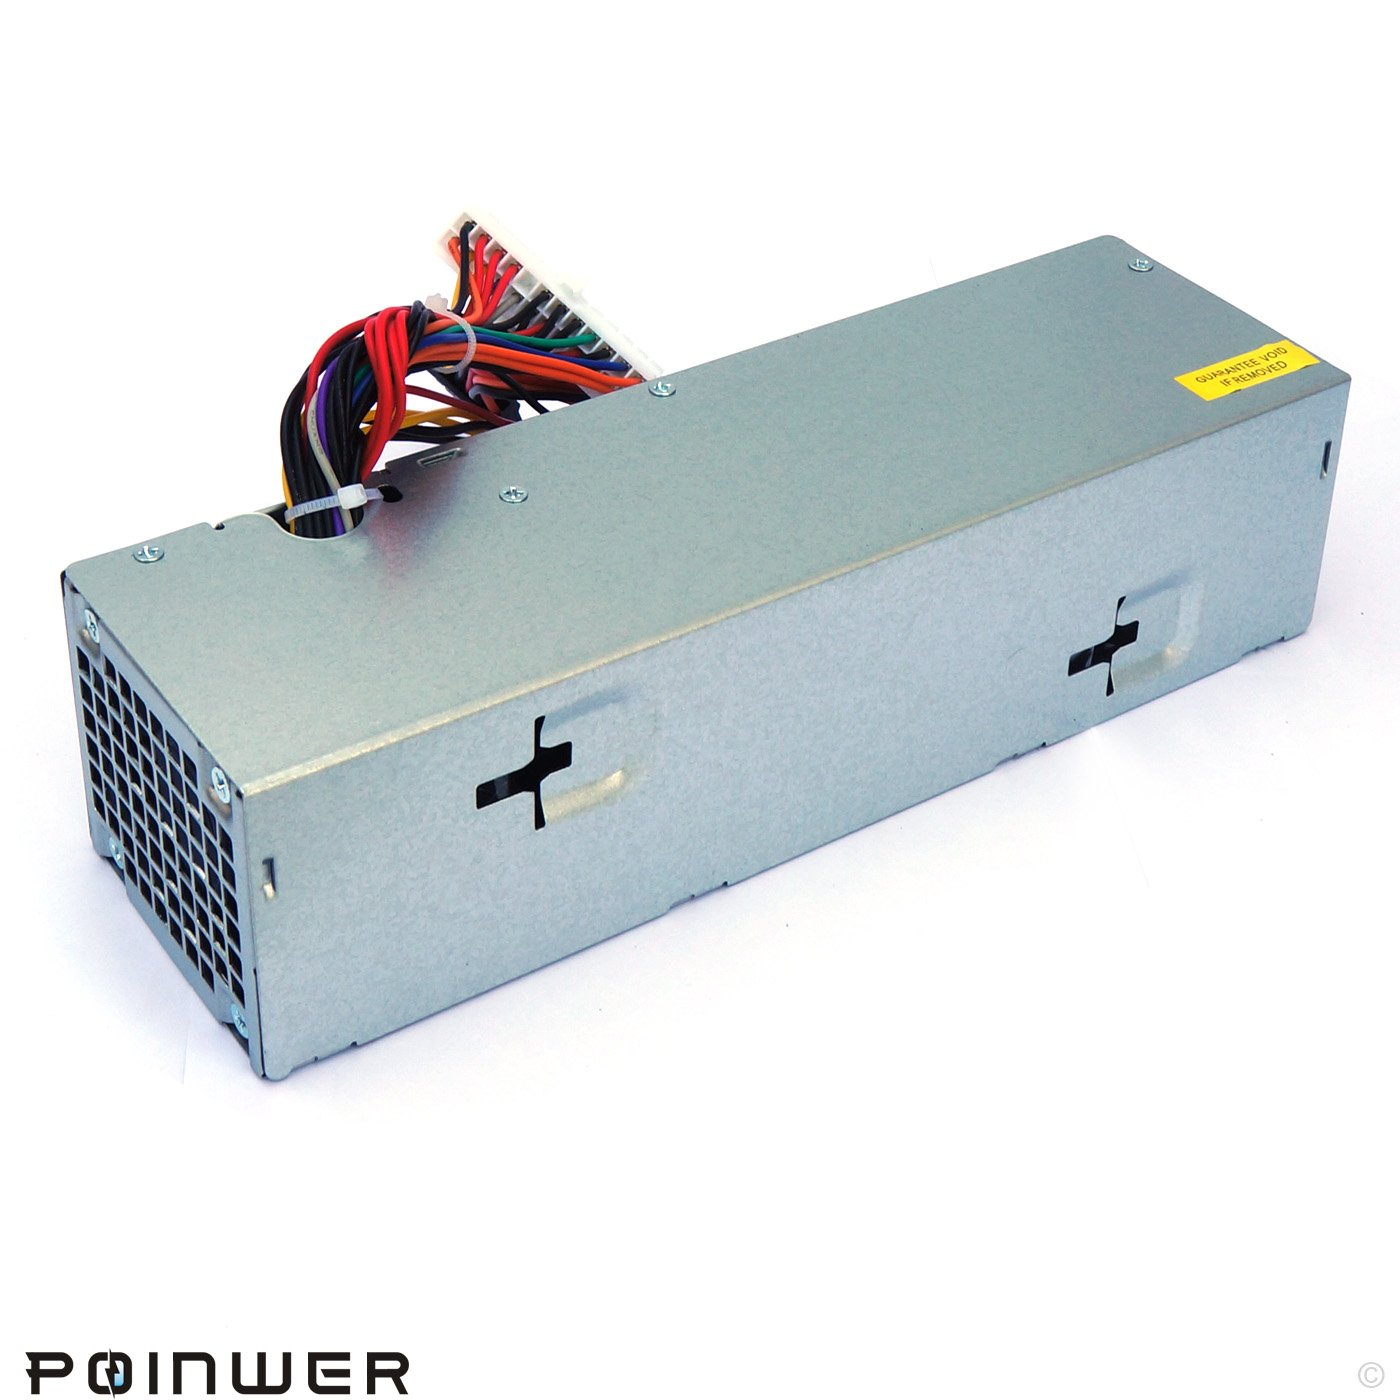 POINWER 3WN11 H240AS-00 709MT 240W Optiplex 7010 SFF Power Supply For Dell Optiplex 390 790 990 3010 9010 Small Form Factor Systems CCCVC 3RK5T 2TXYM F79TD L240AS-00 H240ES-00 D240ES-00 AC240AS-00 by POINWER (Image #4)